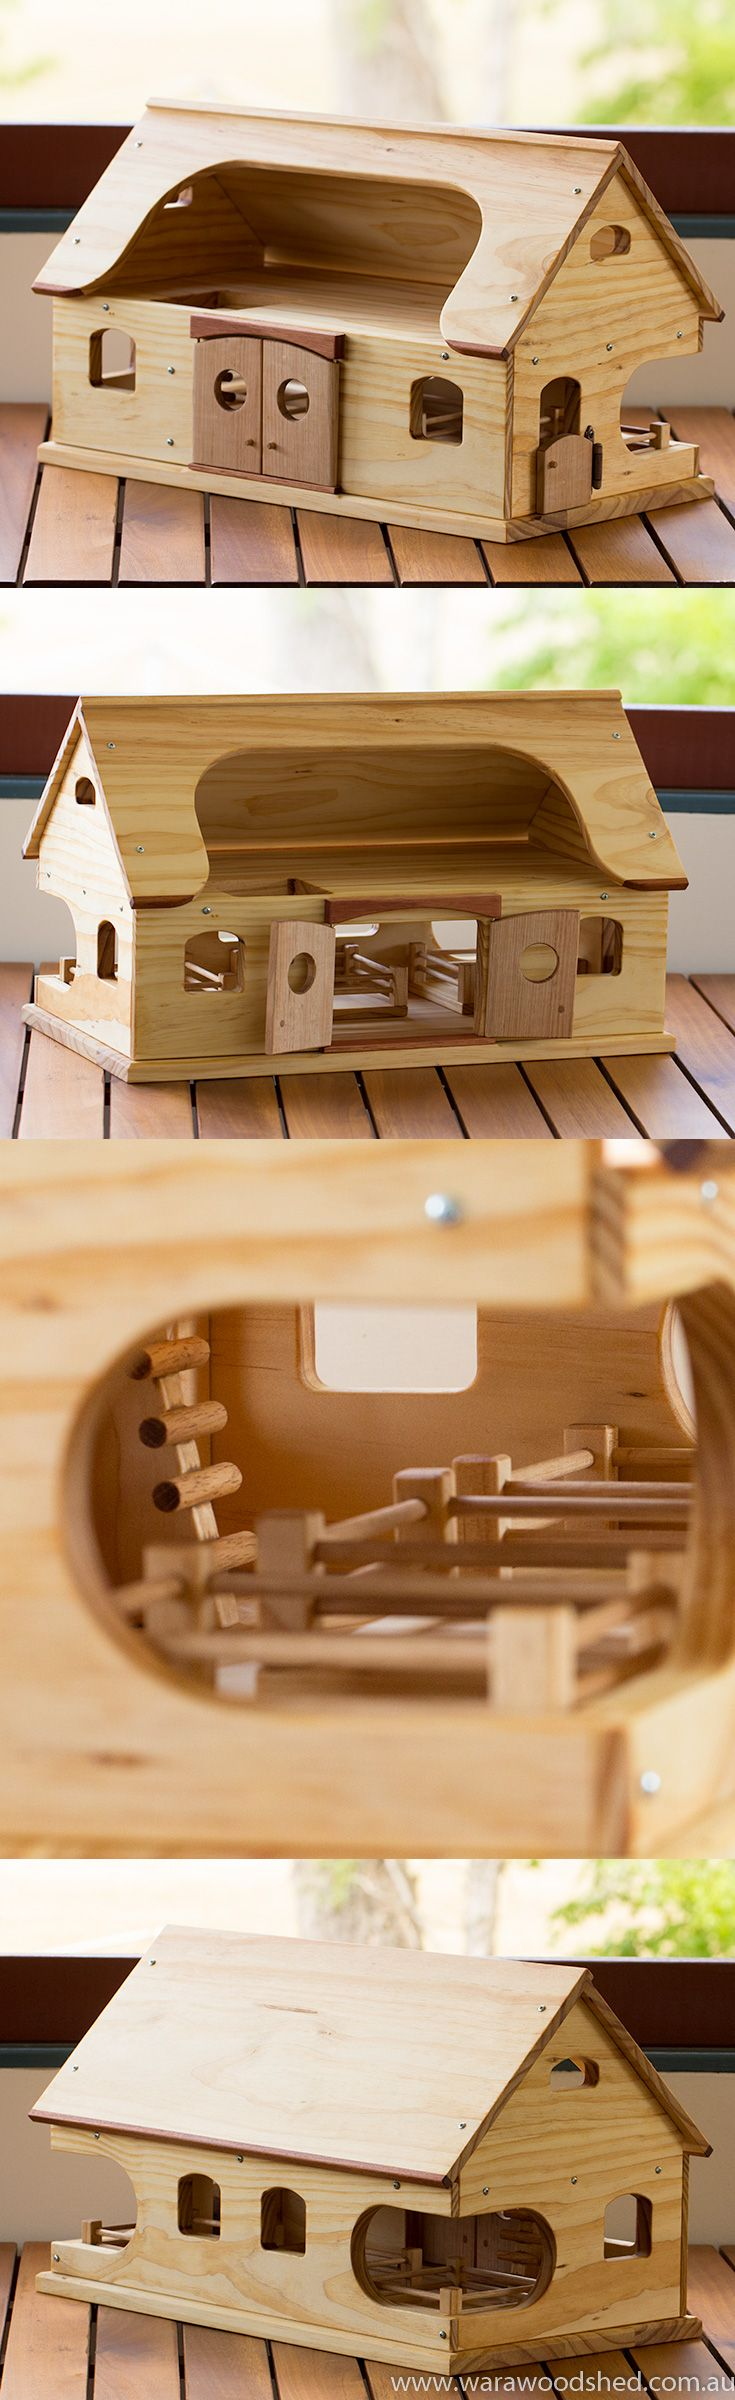 Wooden Toy Farmhouse